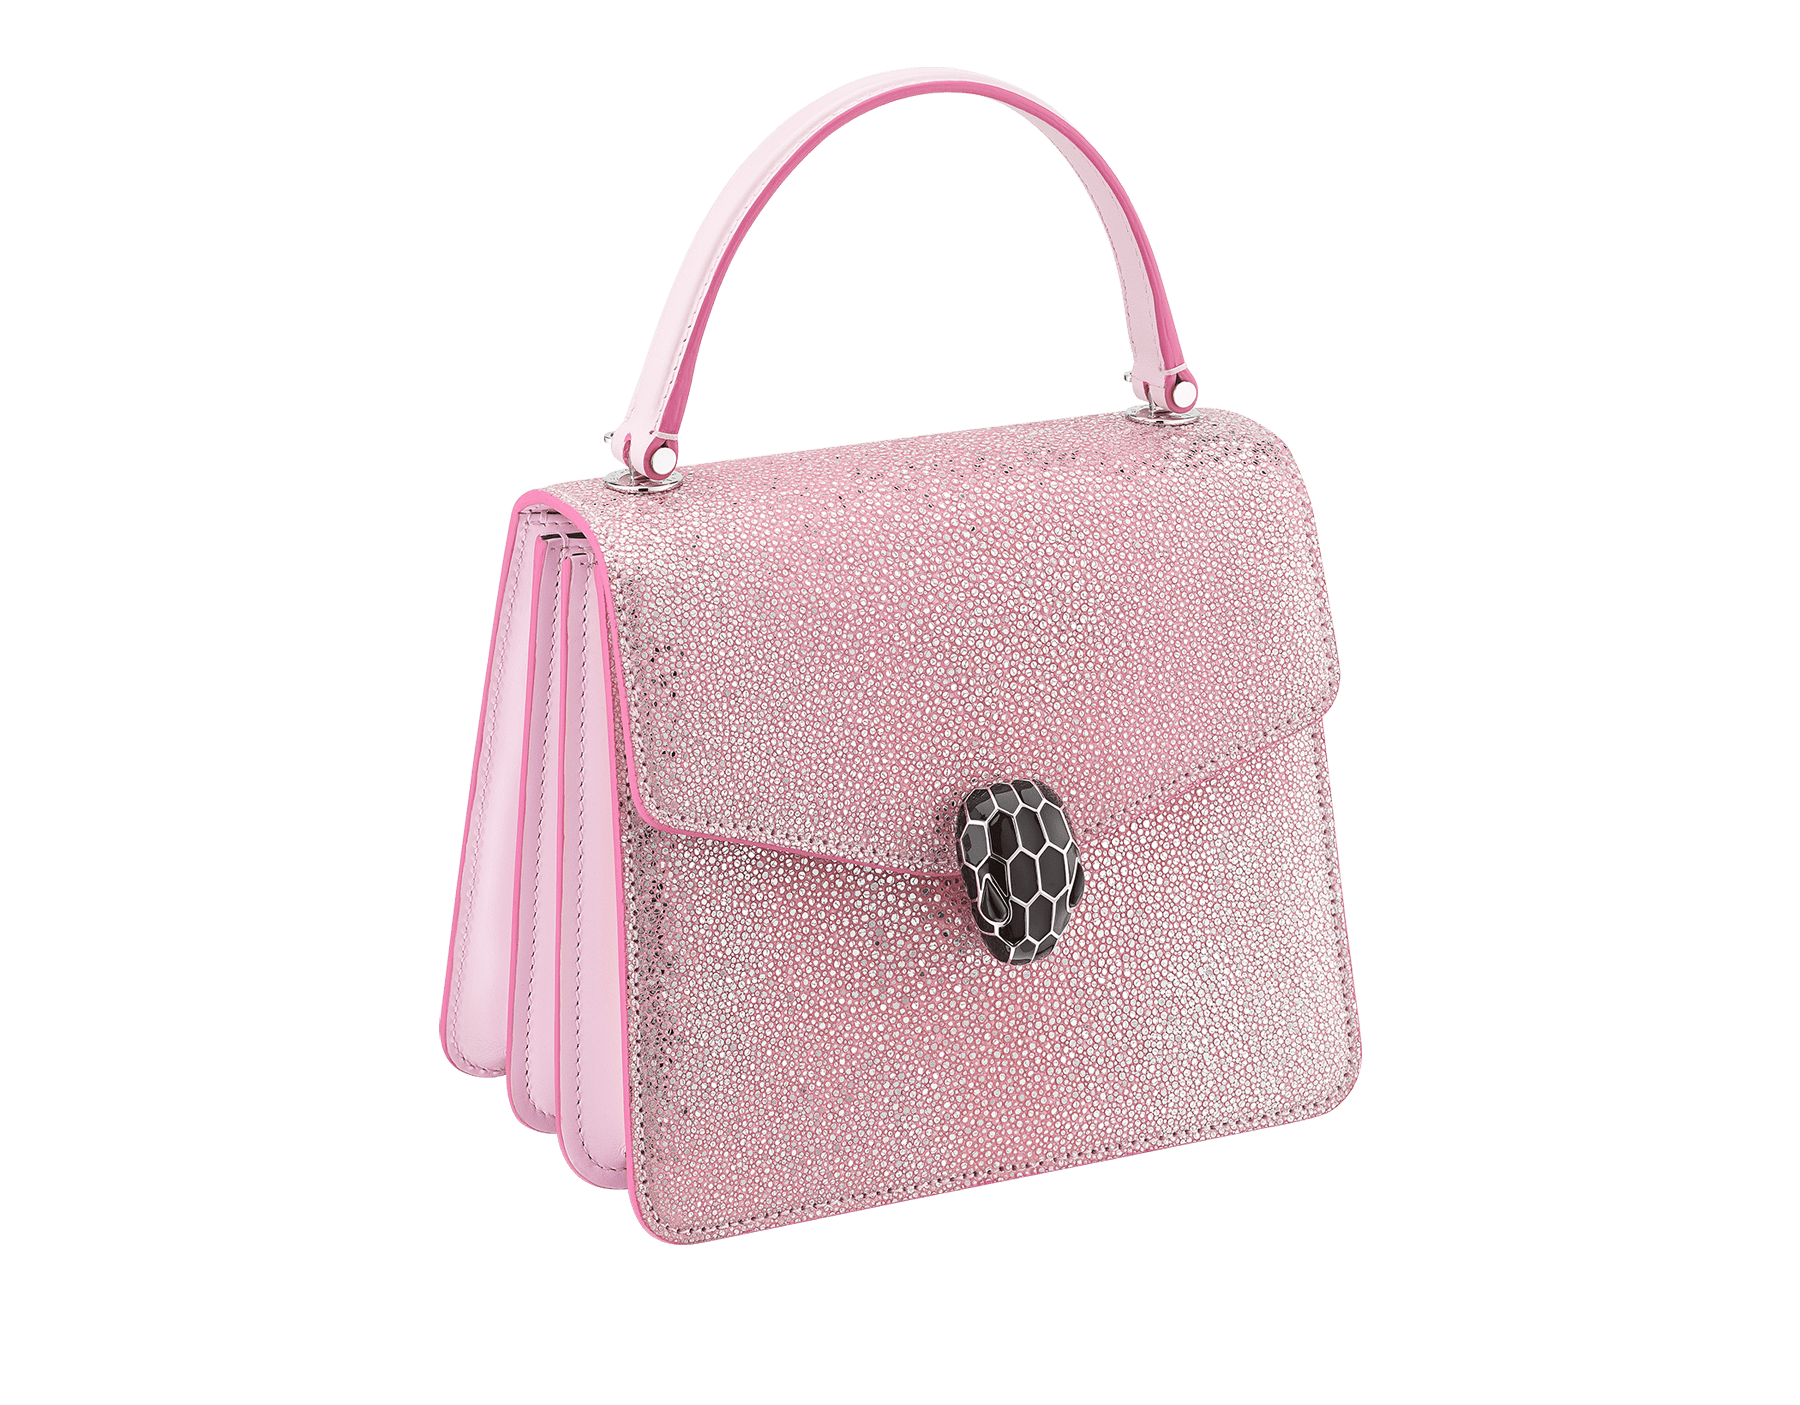 """Serpenti Forever"" crossbody bag in rosa di francia crystal galuchat body and rosa di francia calf leather sides. Iconic snake head closure in palladium-plated brass enriched with black enamel and black onyx eyes. 289459 image 2"